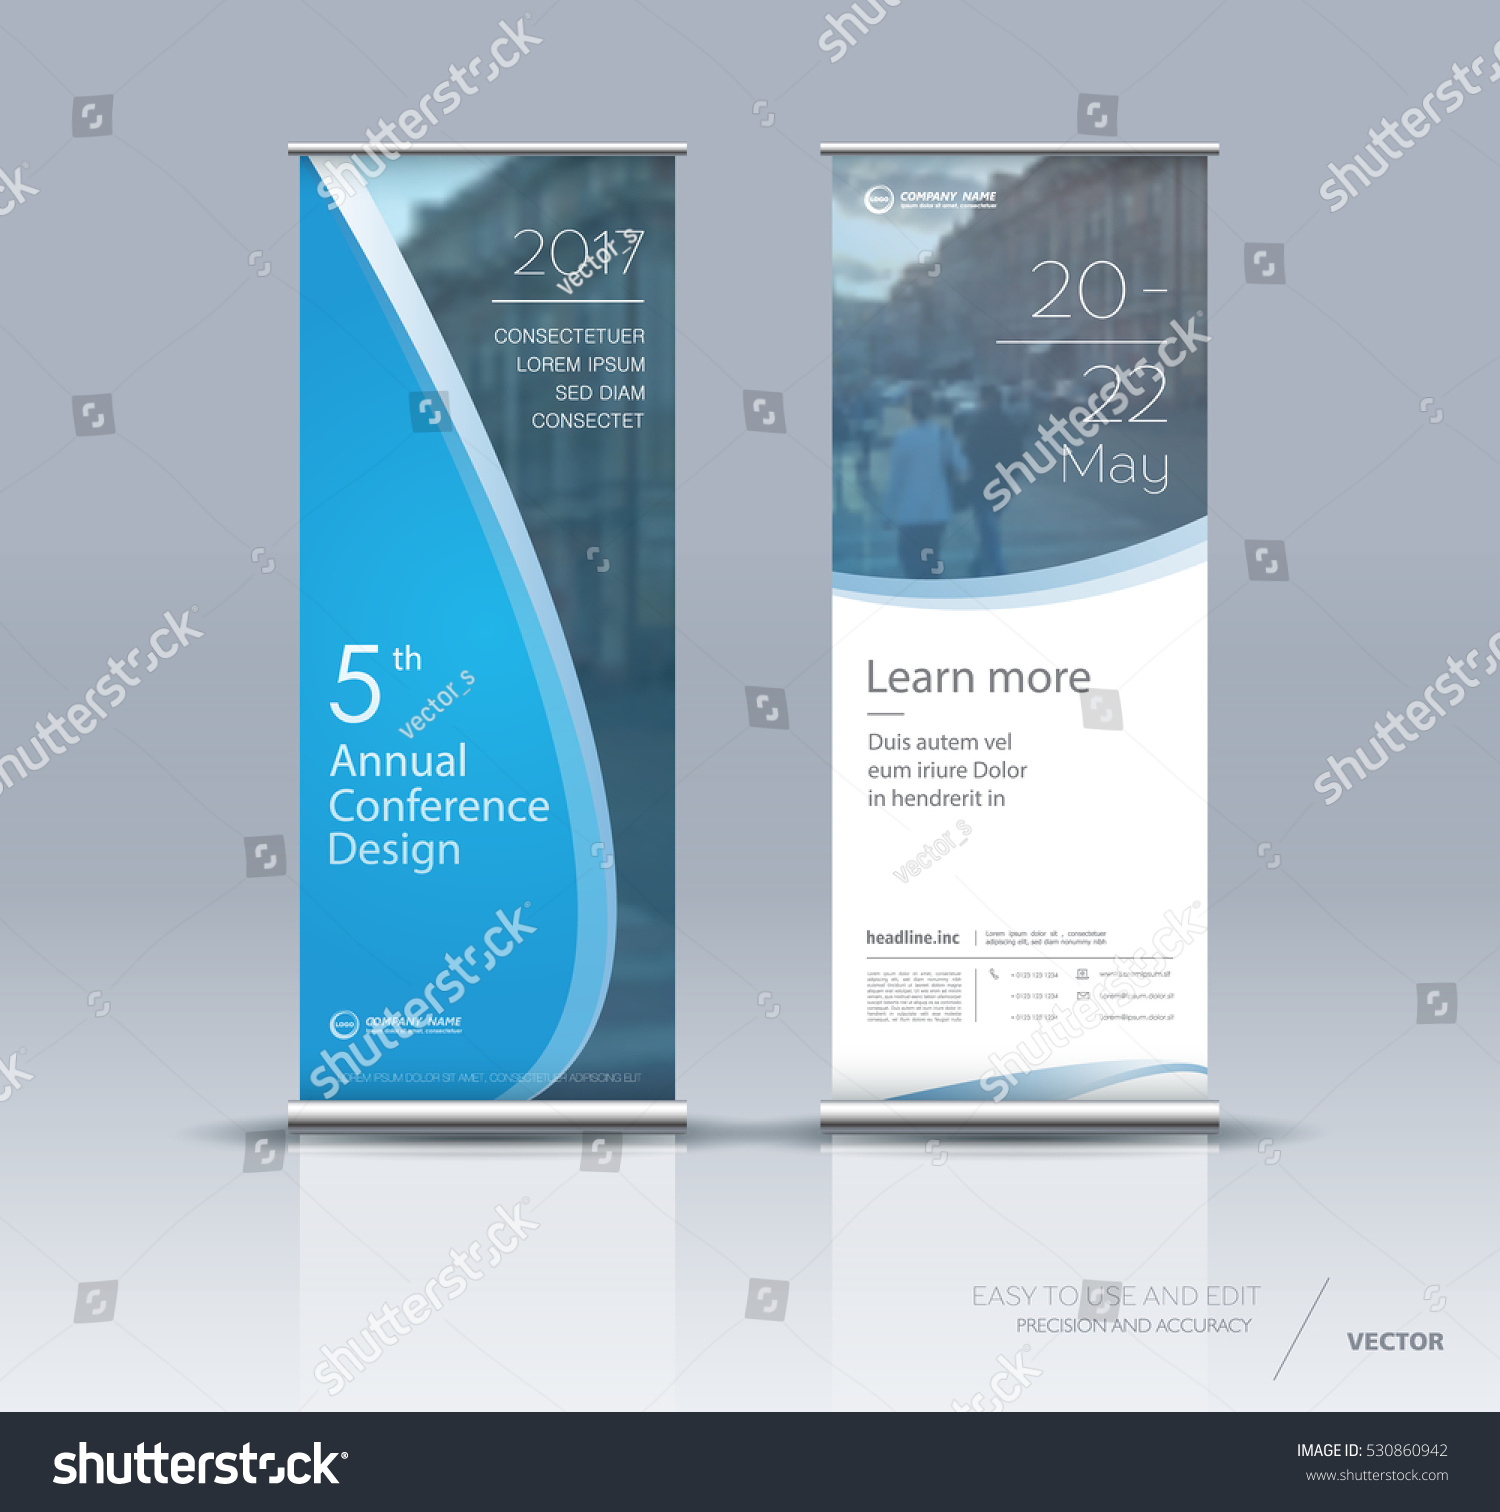 Vector How To Make A Flag Banner Designdesign Banners